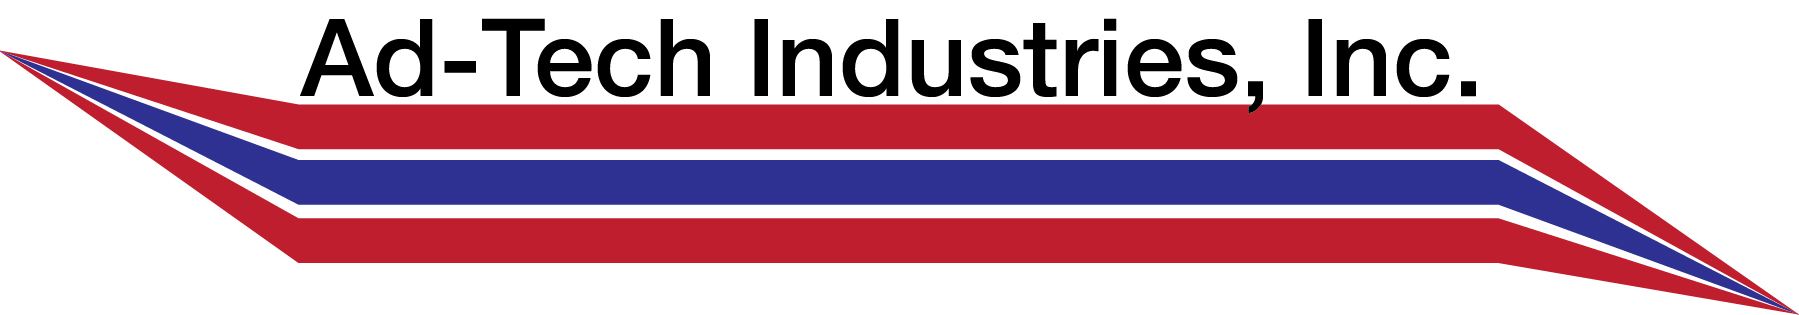 Ad-Tech Industries